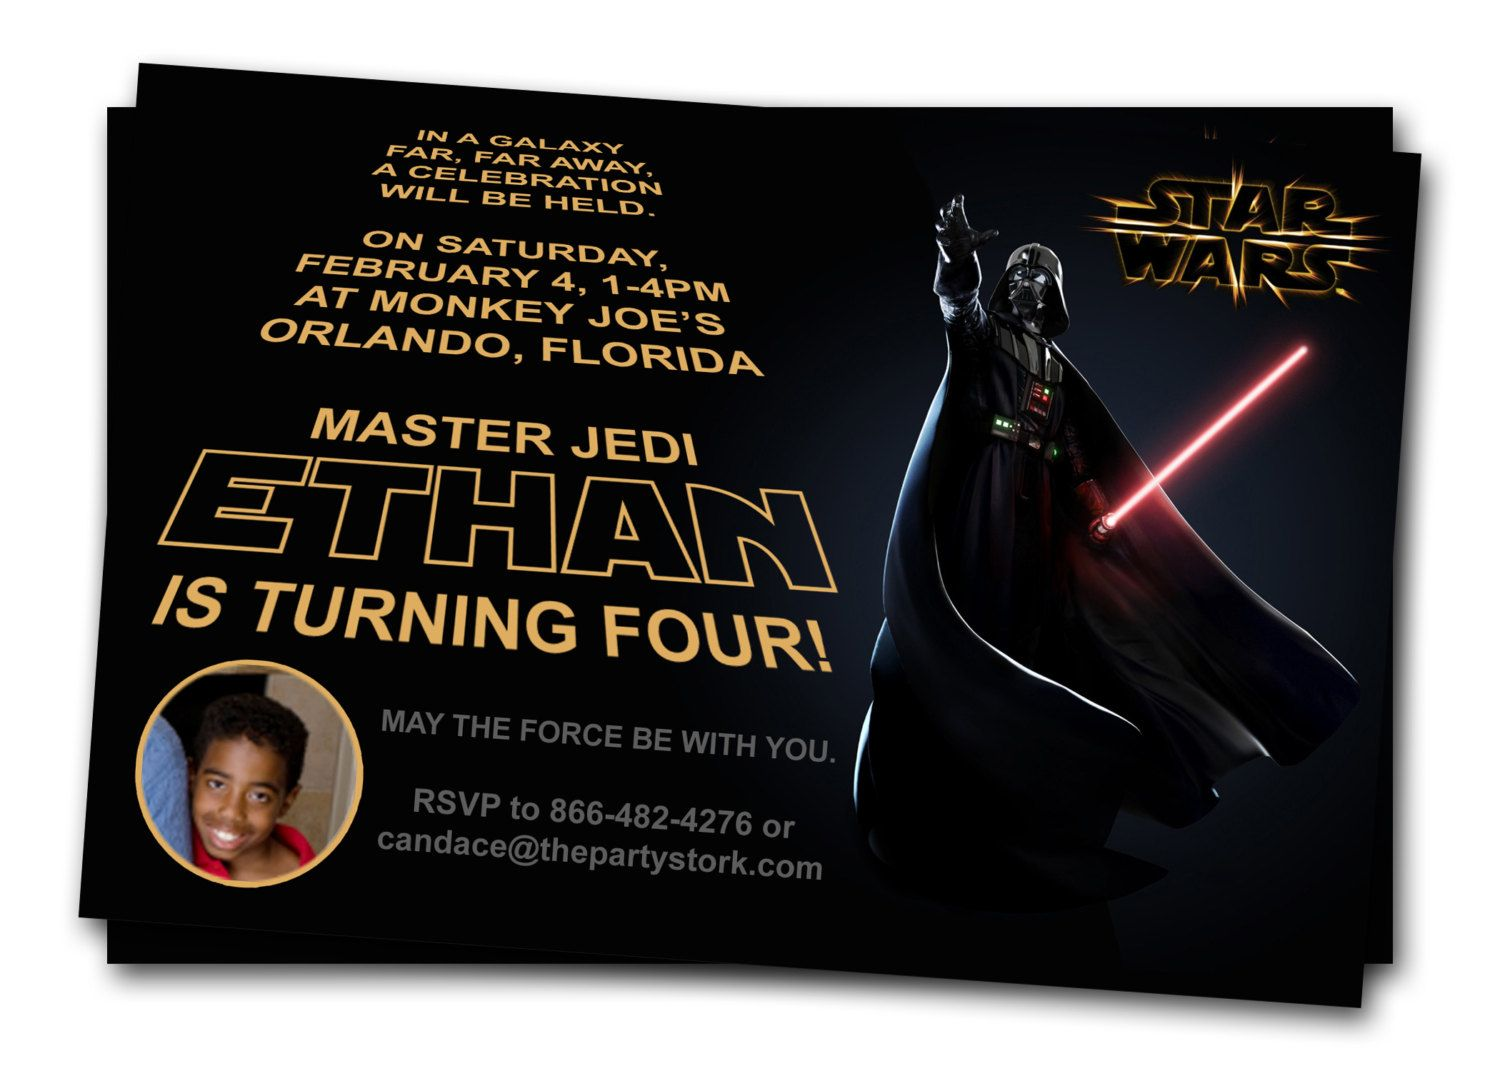 star wars birthday party invitations printable ; 0655f027afded9a2d9e877e0376b4043